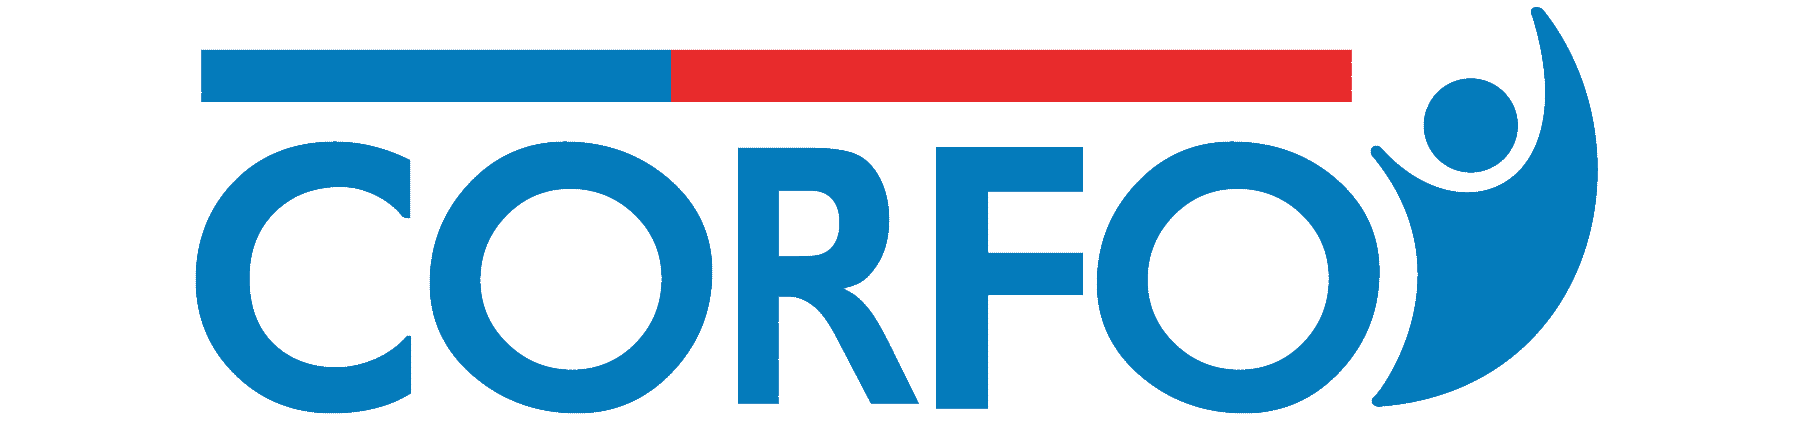 4corfo.png